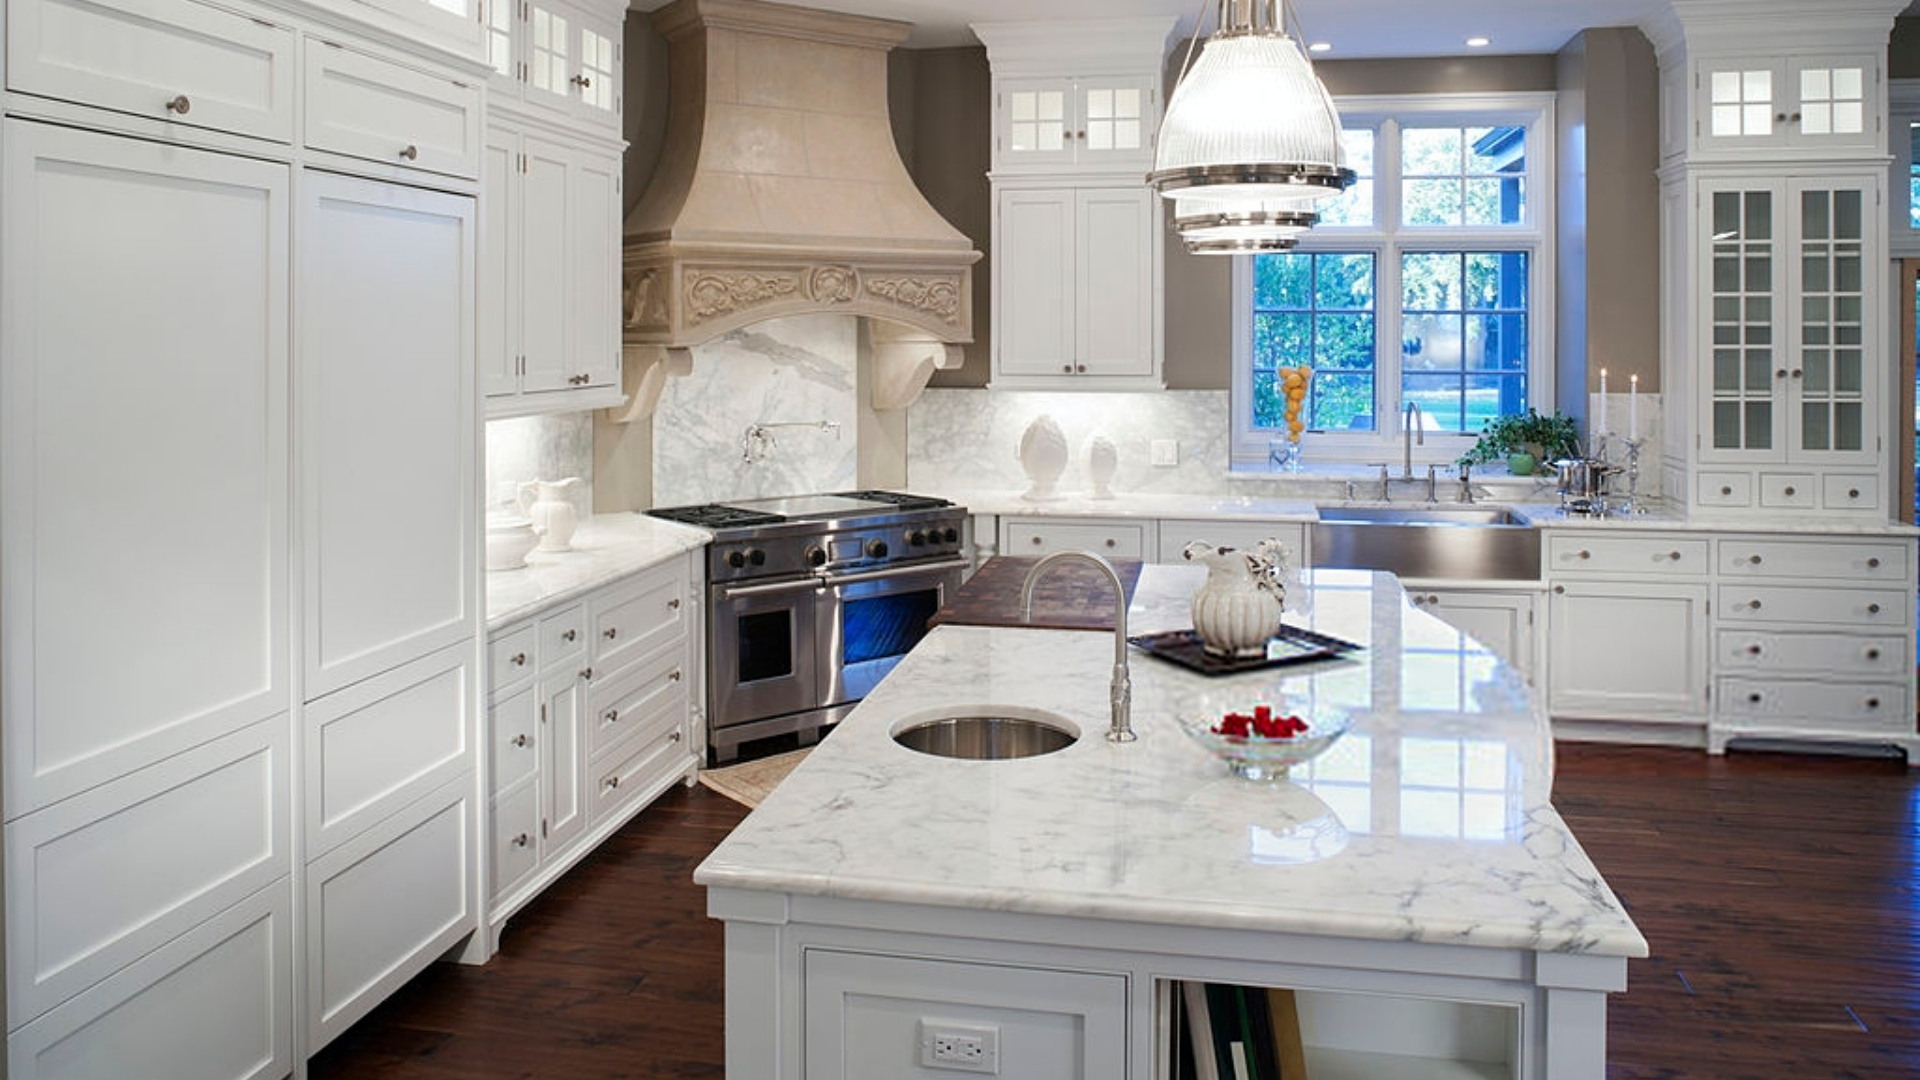 What Countertop Color Looks Best With White Cabinets In Your St Louis Kitchen